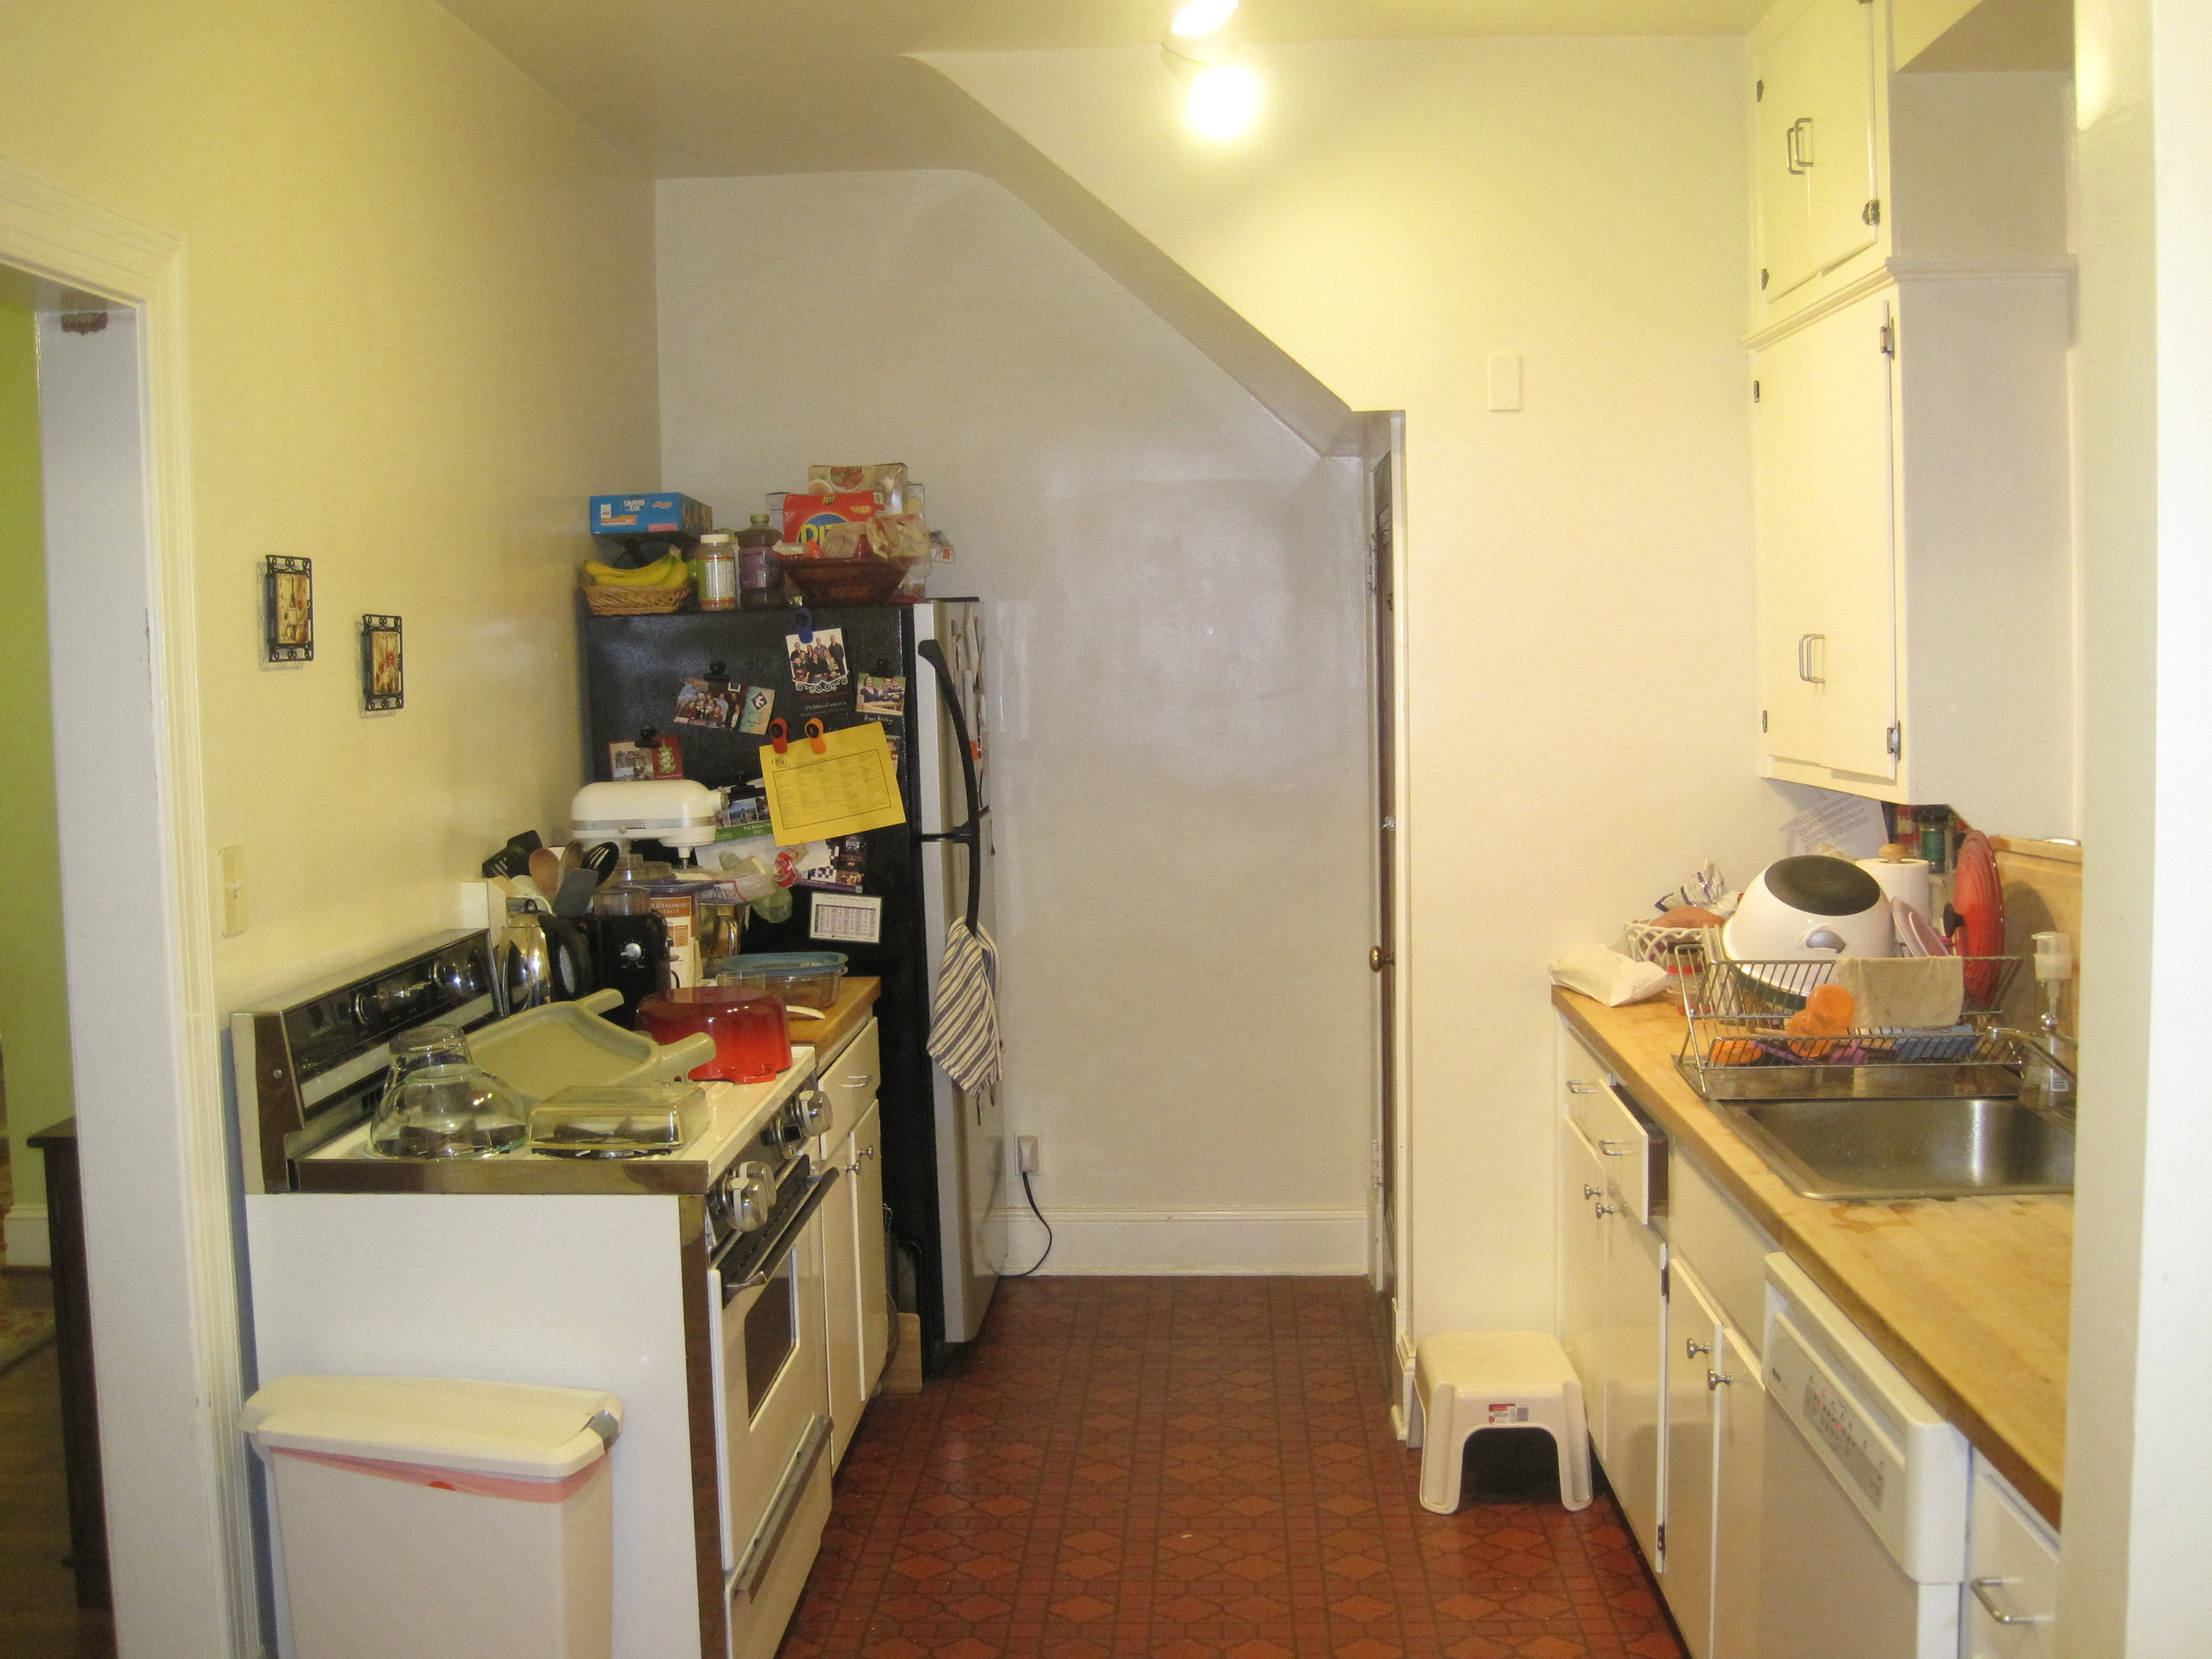 One view of the old kitchen